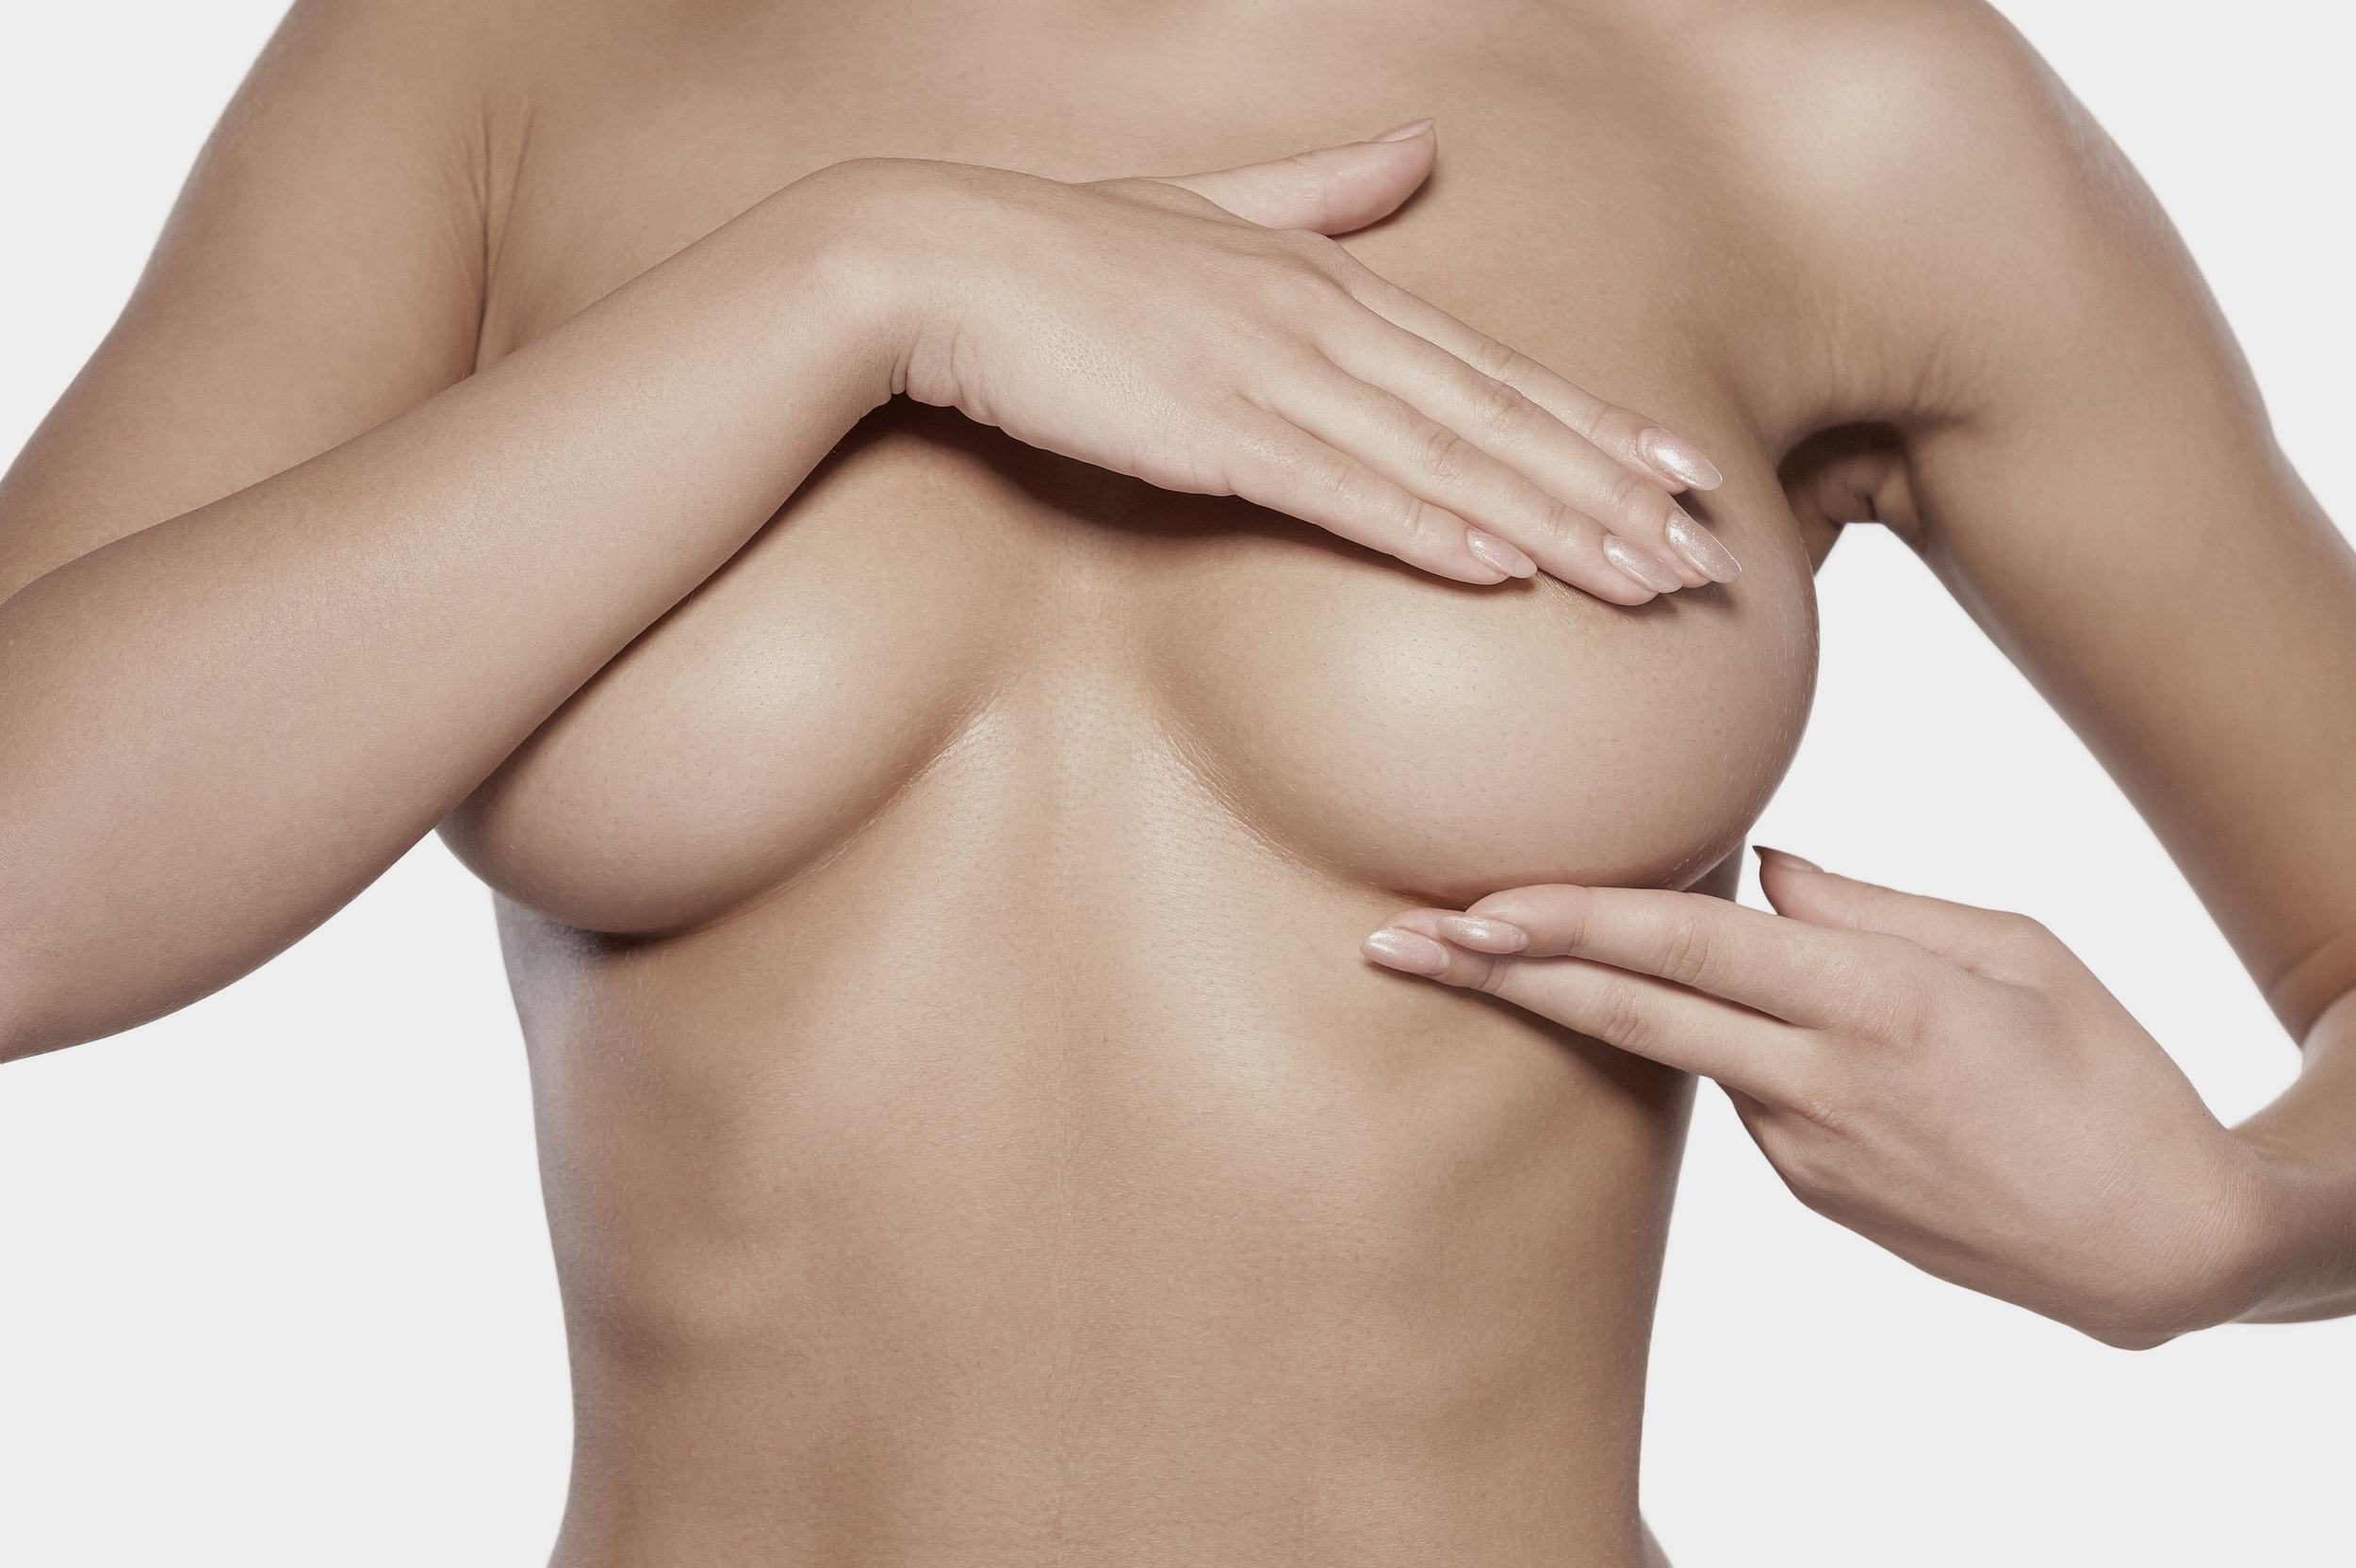 key treatment areas - Revision Breast Surgery is perfect for patients who want to replace and remove breast implants to change the size or shape of their breasts. It also targets breasts that have developed a Capsular Contracture and use used to fix implant rippling following previous breast surgery.